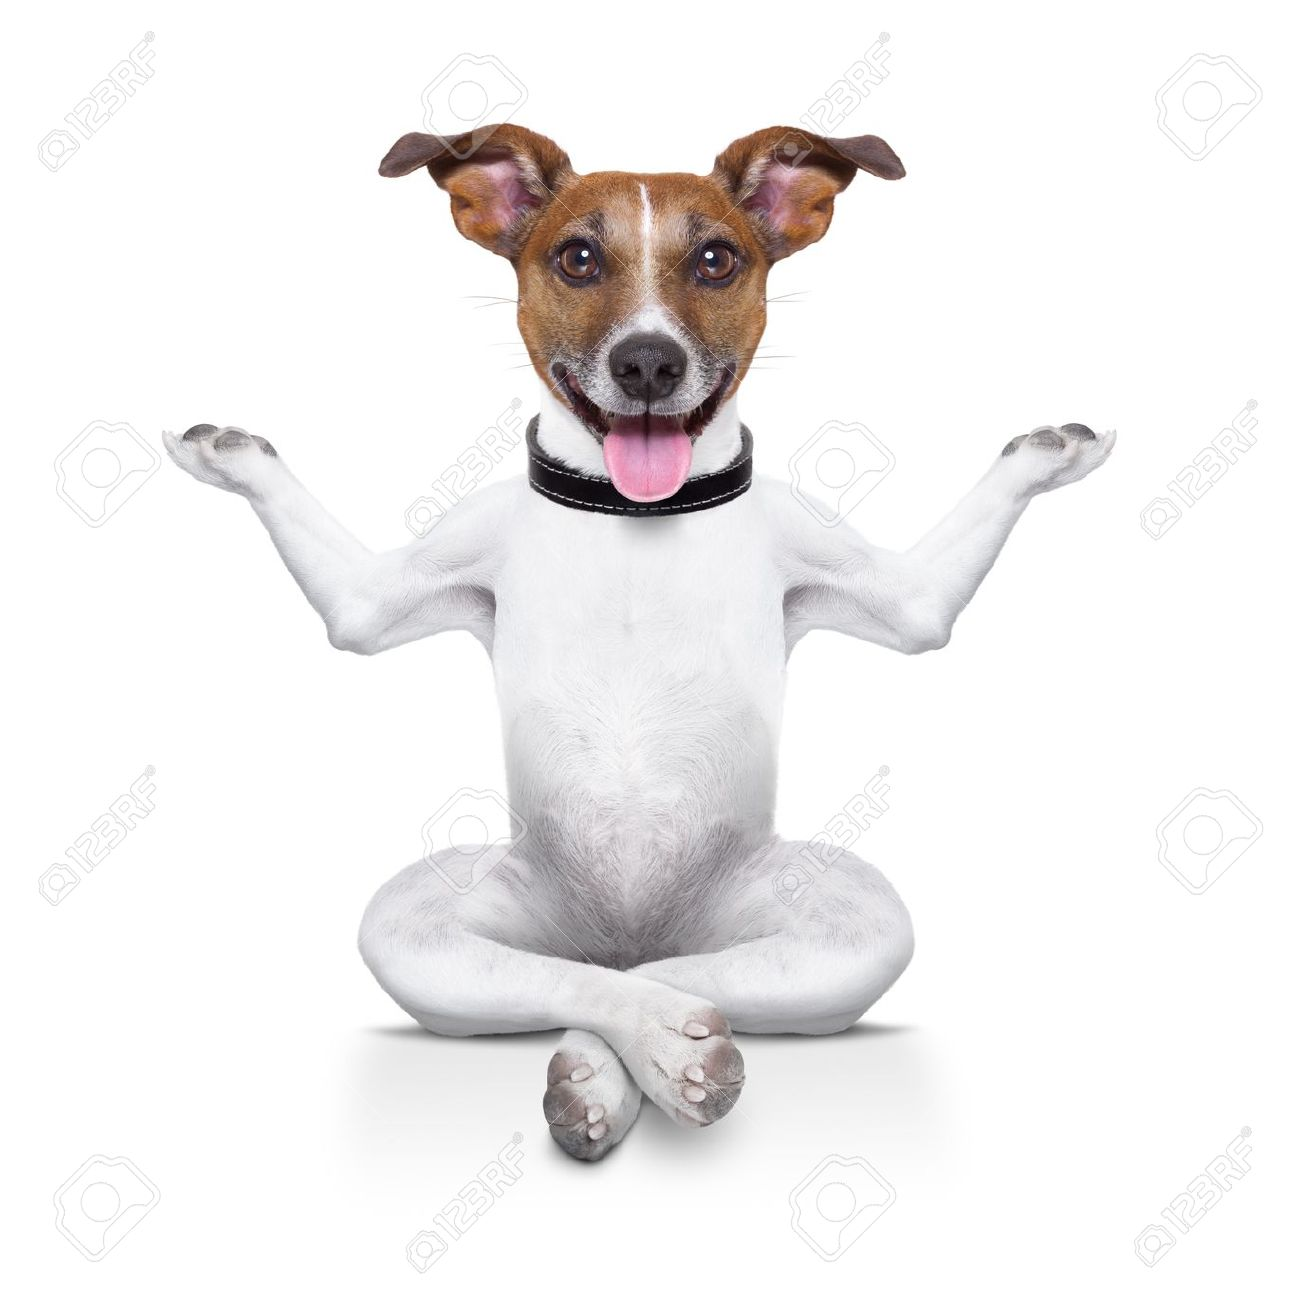 yoga dog sitting relaxed with happy face Stock Photo - 21377307